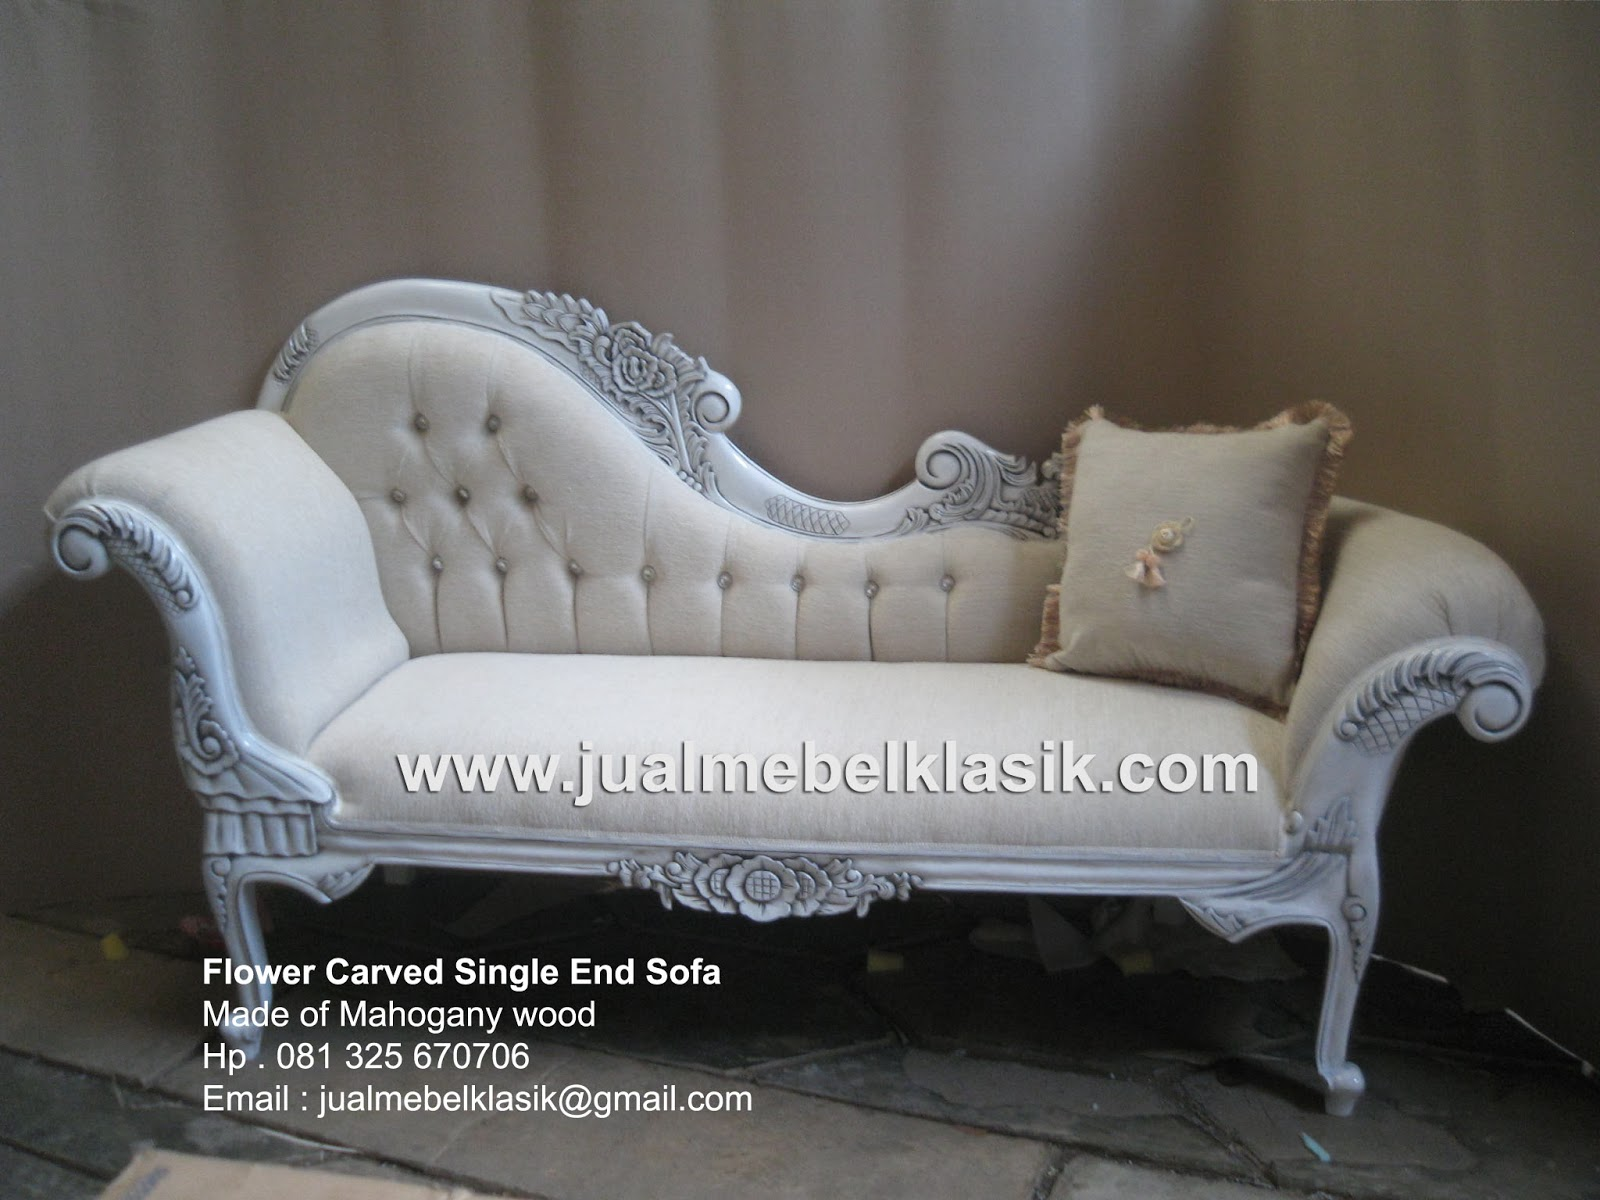 Indonesia classic furniture supplier antique sofa carved sofa single end finished in antique white painted